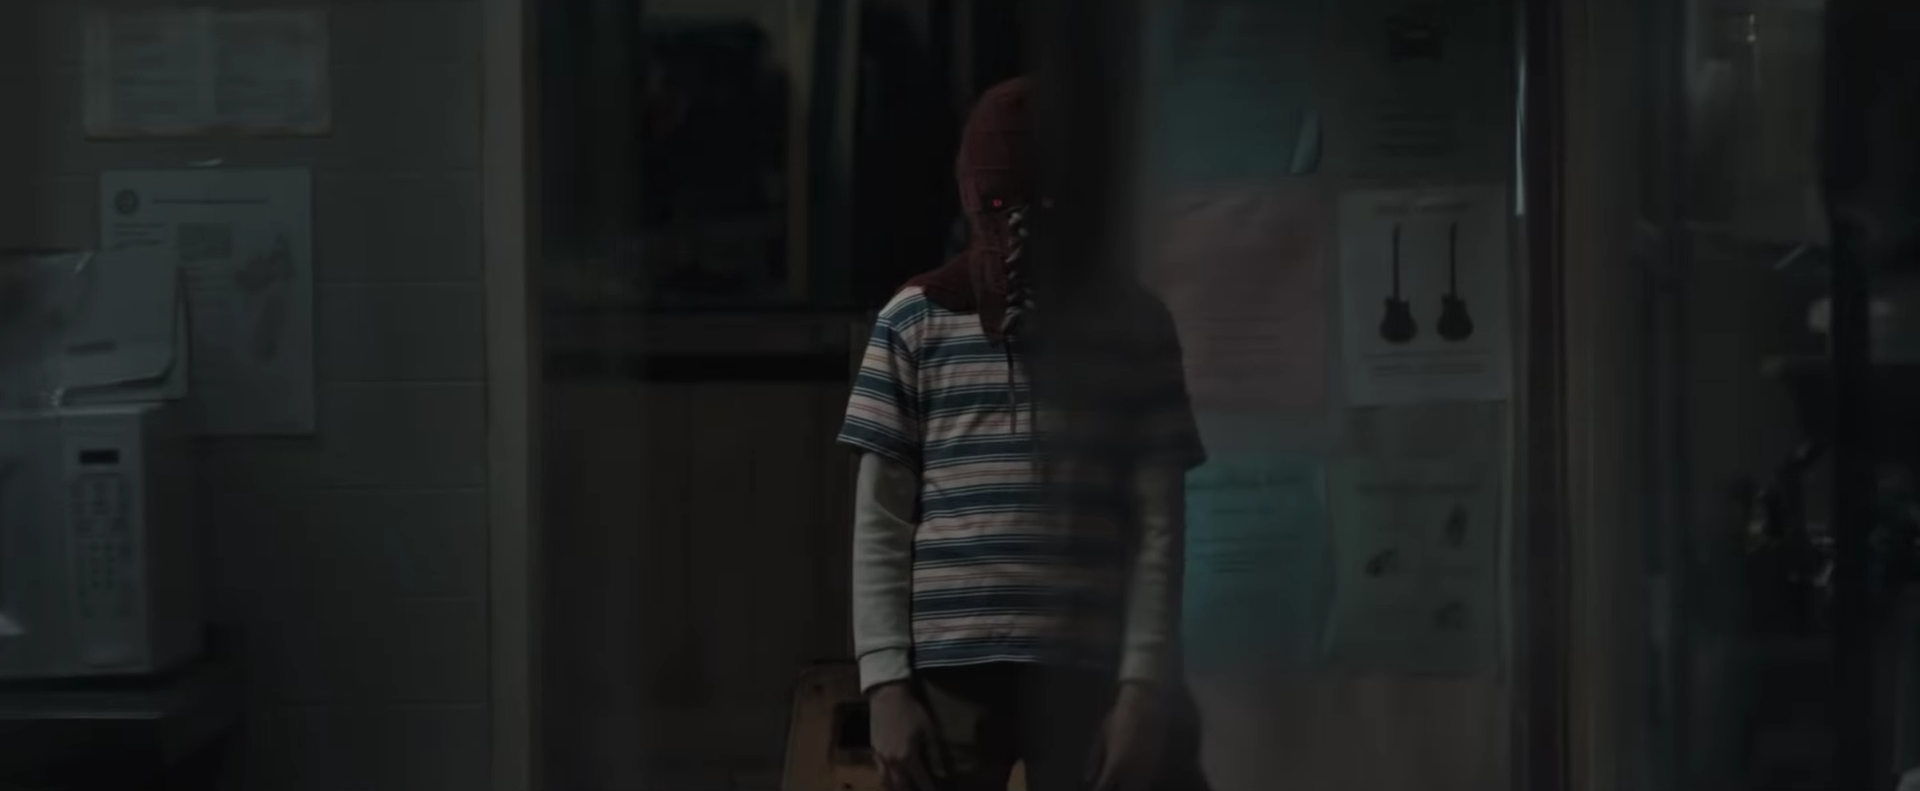 'Brightburn': See Terrifying Trailer for James Gunn's 'Superhero Horror' Film